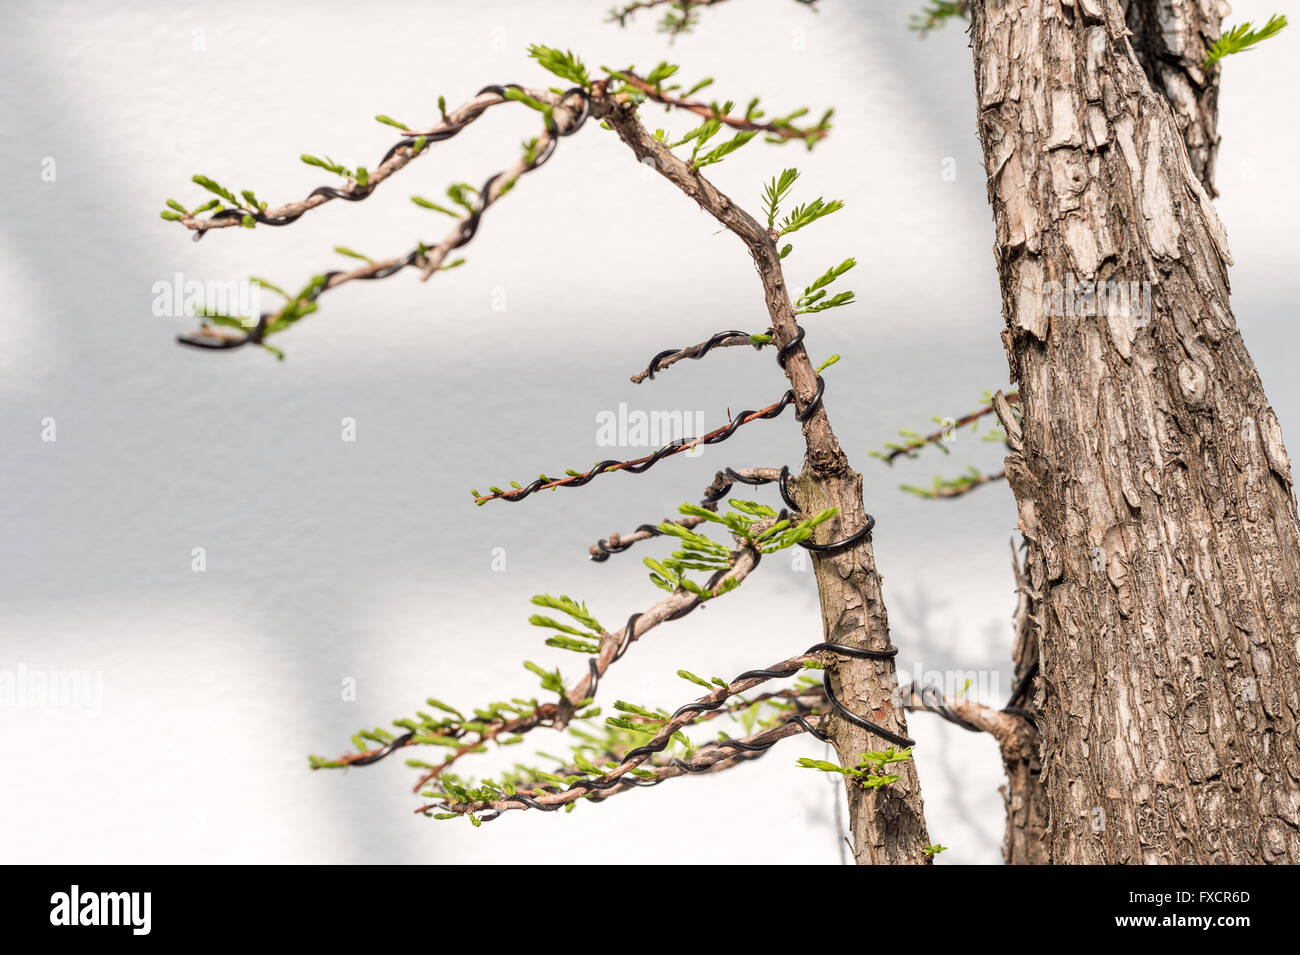 Close Up Of Bonsai Wiring To Shape The Branches Stock Photo For Beginners